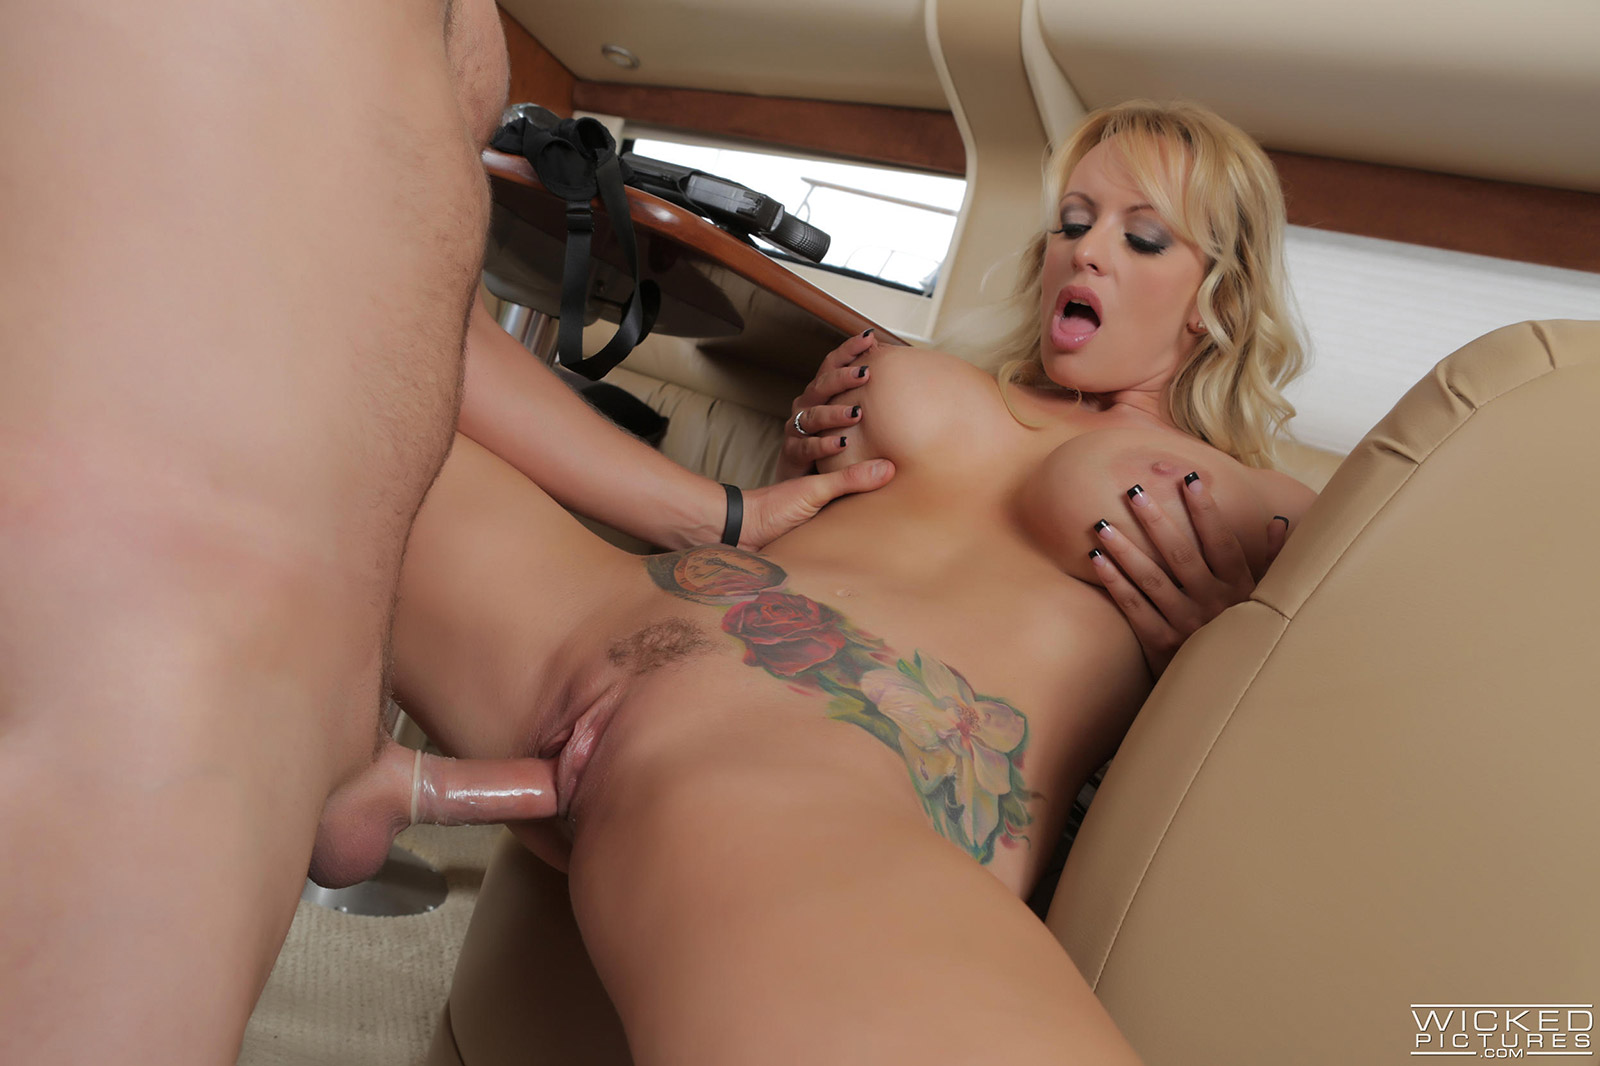 Big dildo riding fuck with busty sexy milf girl 3